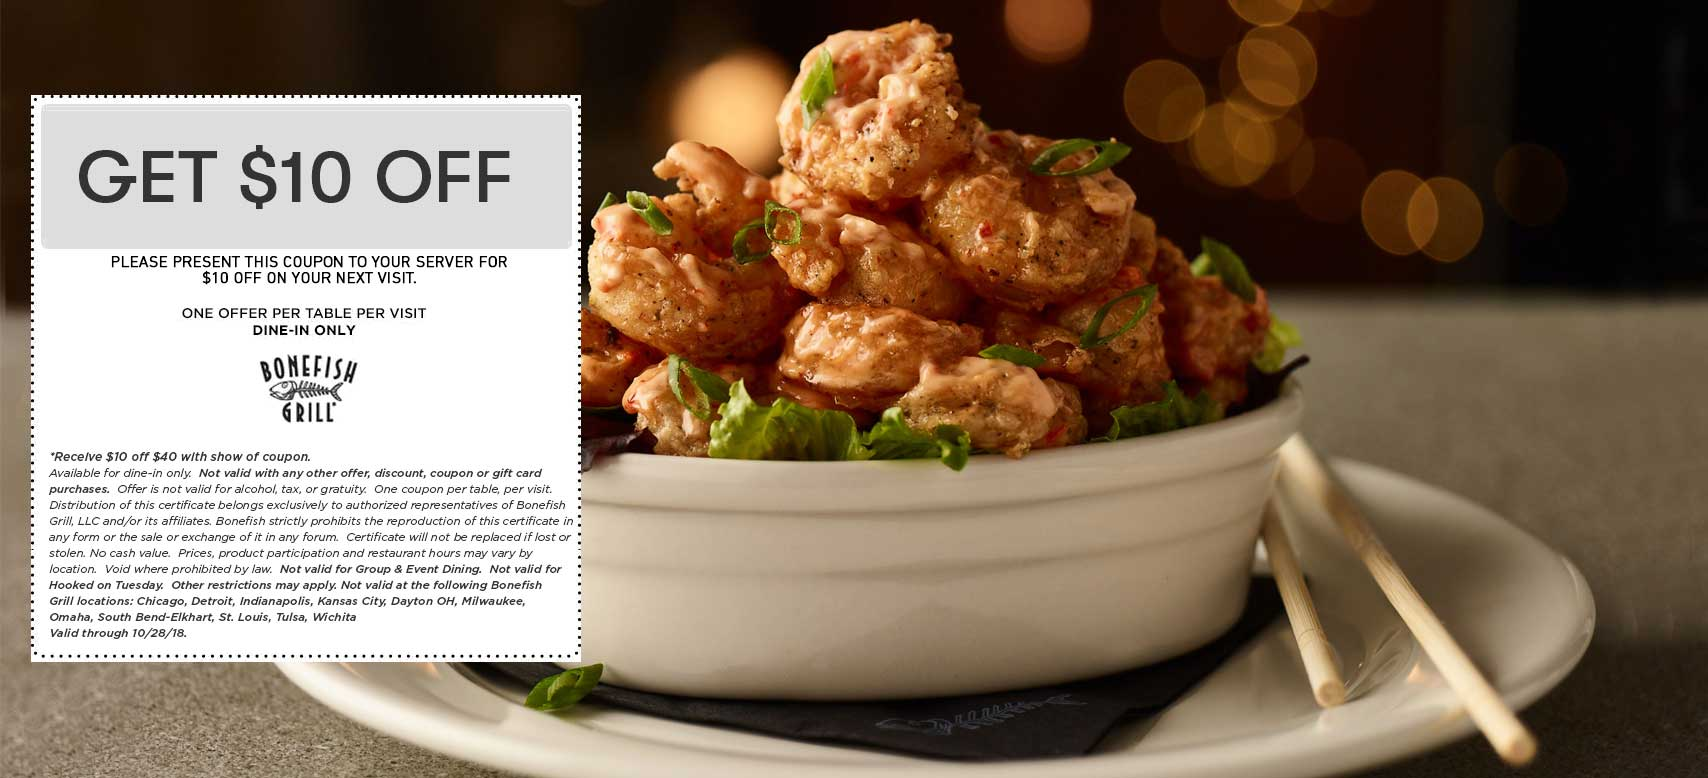 Bonefish Grill Coupon July 2019 $10 off $40 at Bonefish Grill restaurants